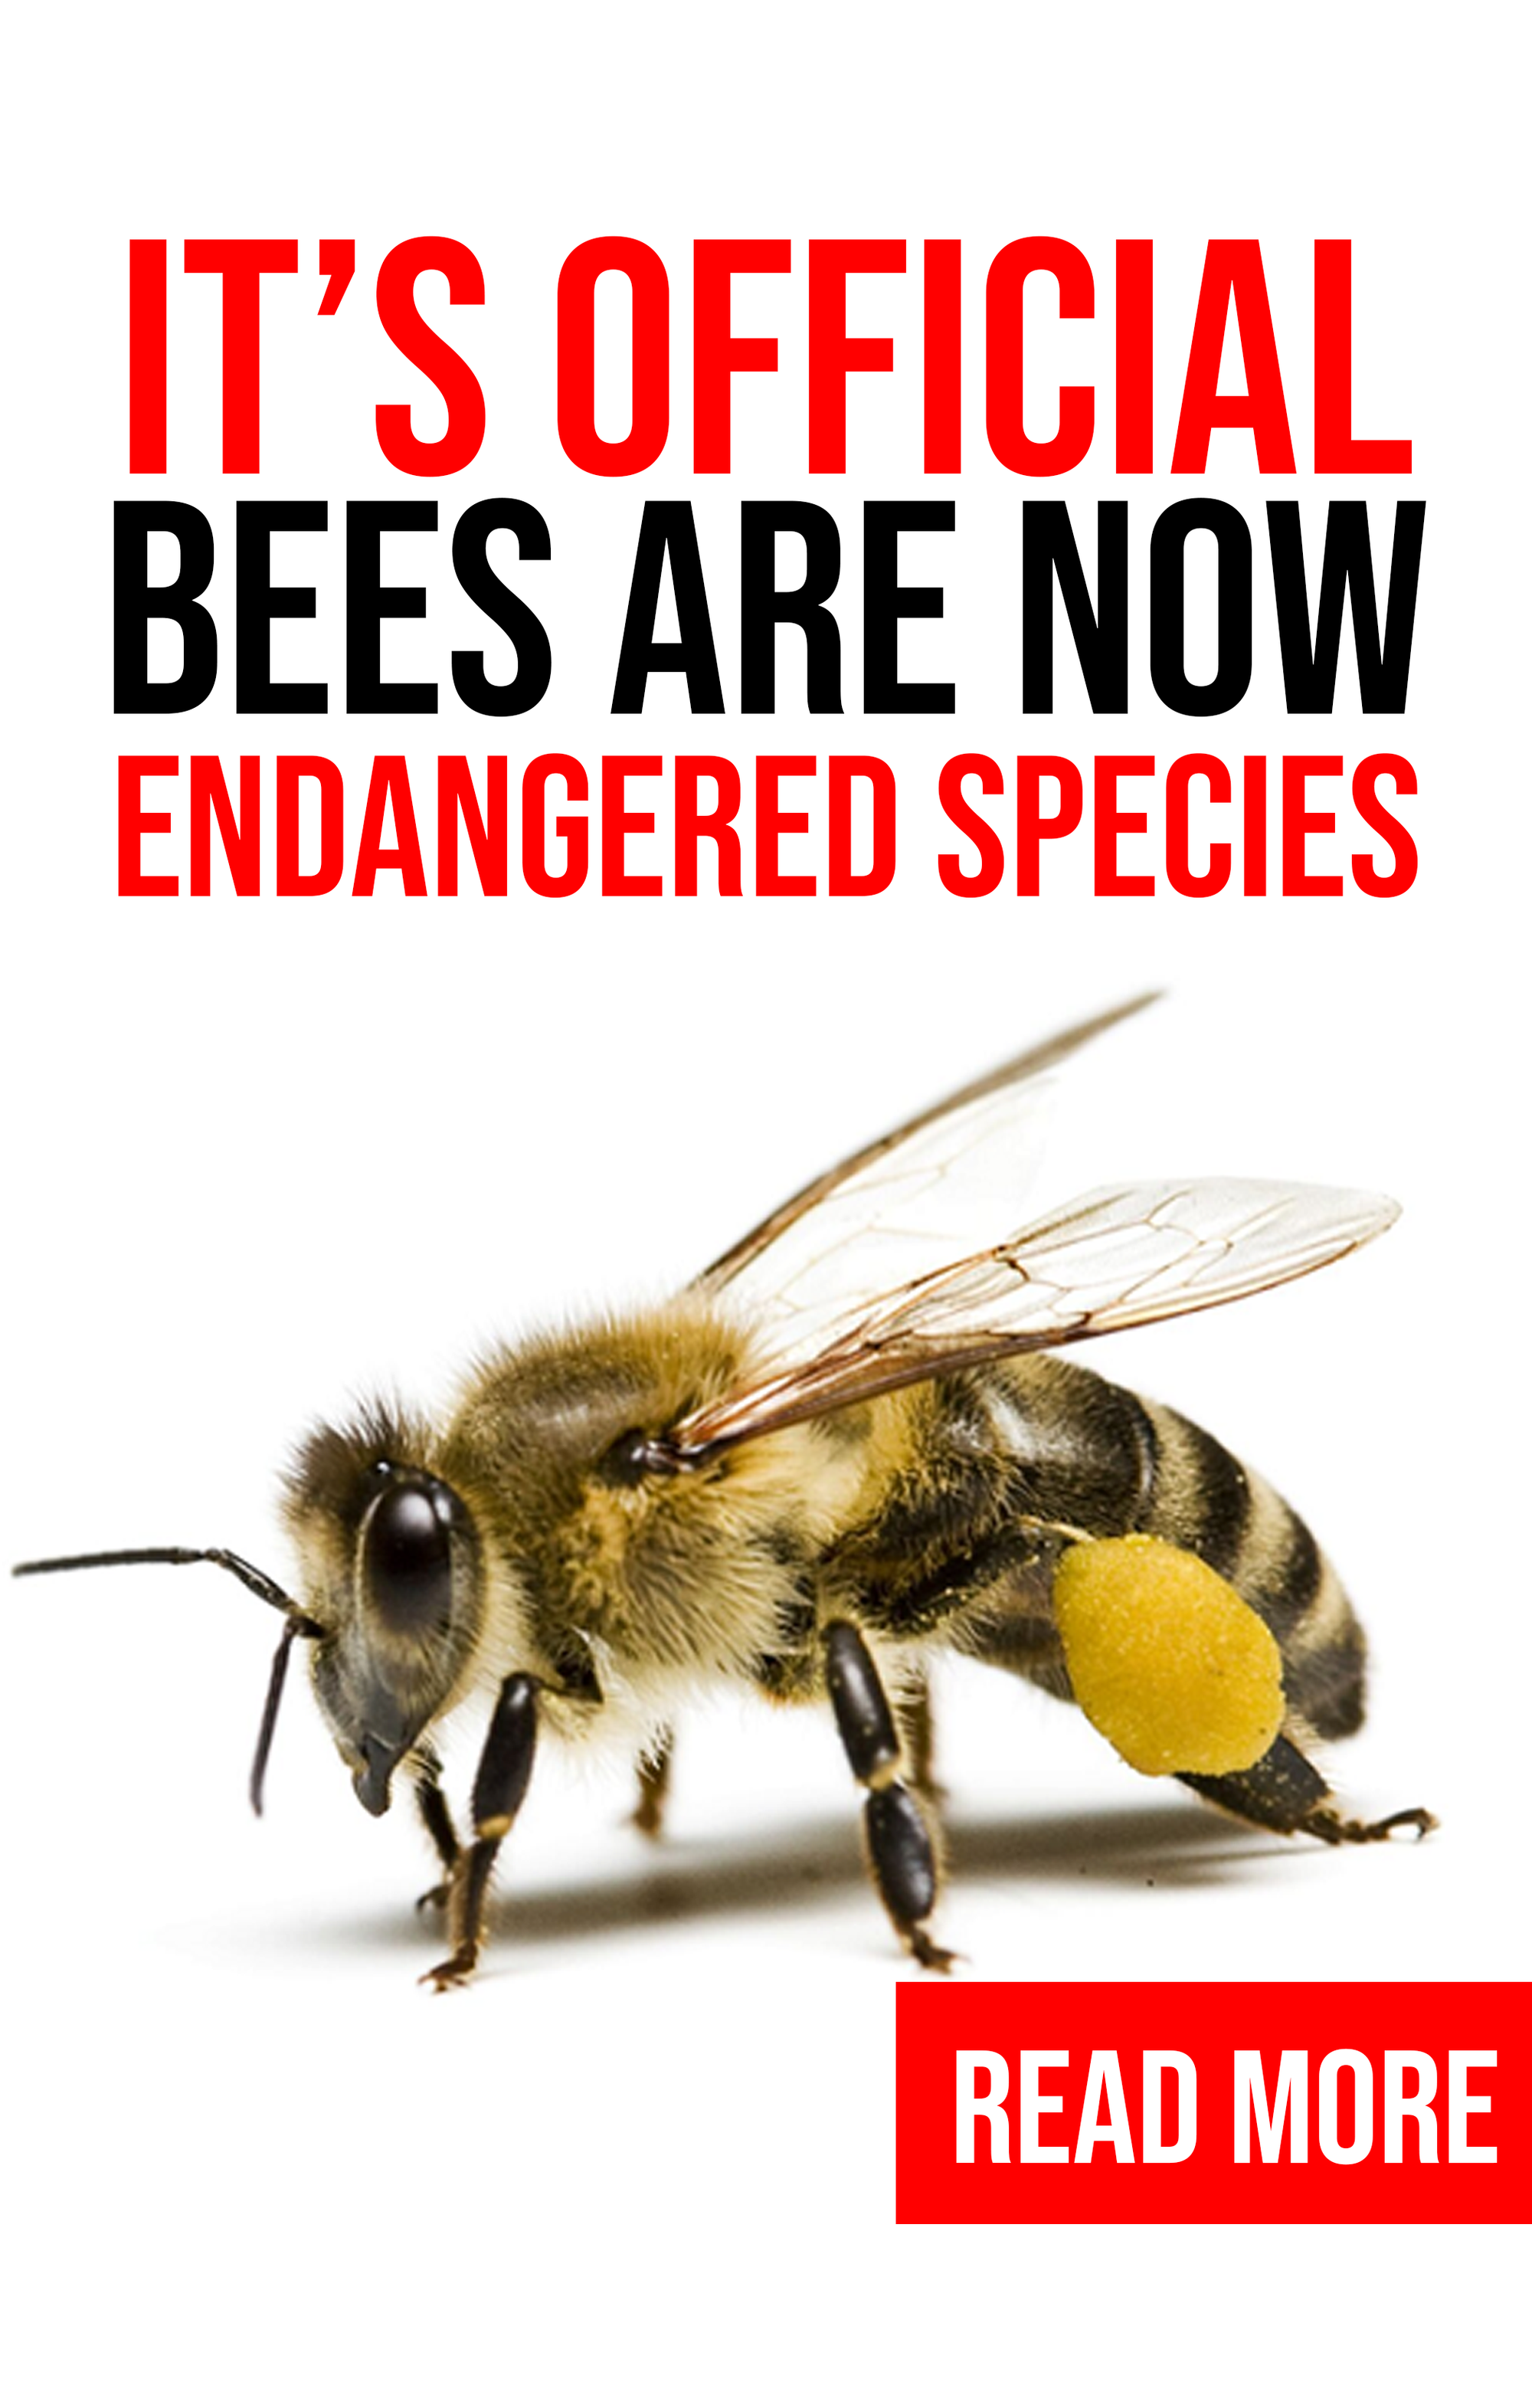 IT'S OFFICIAL, BEES ARE NOW ENDANGERED SPECIES